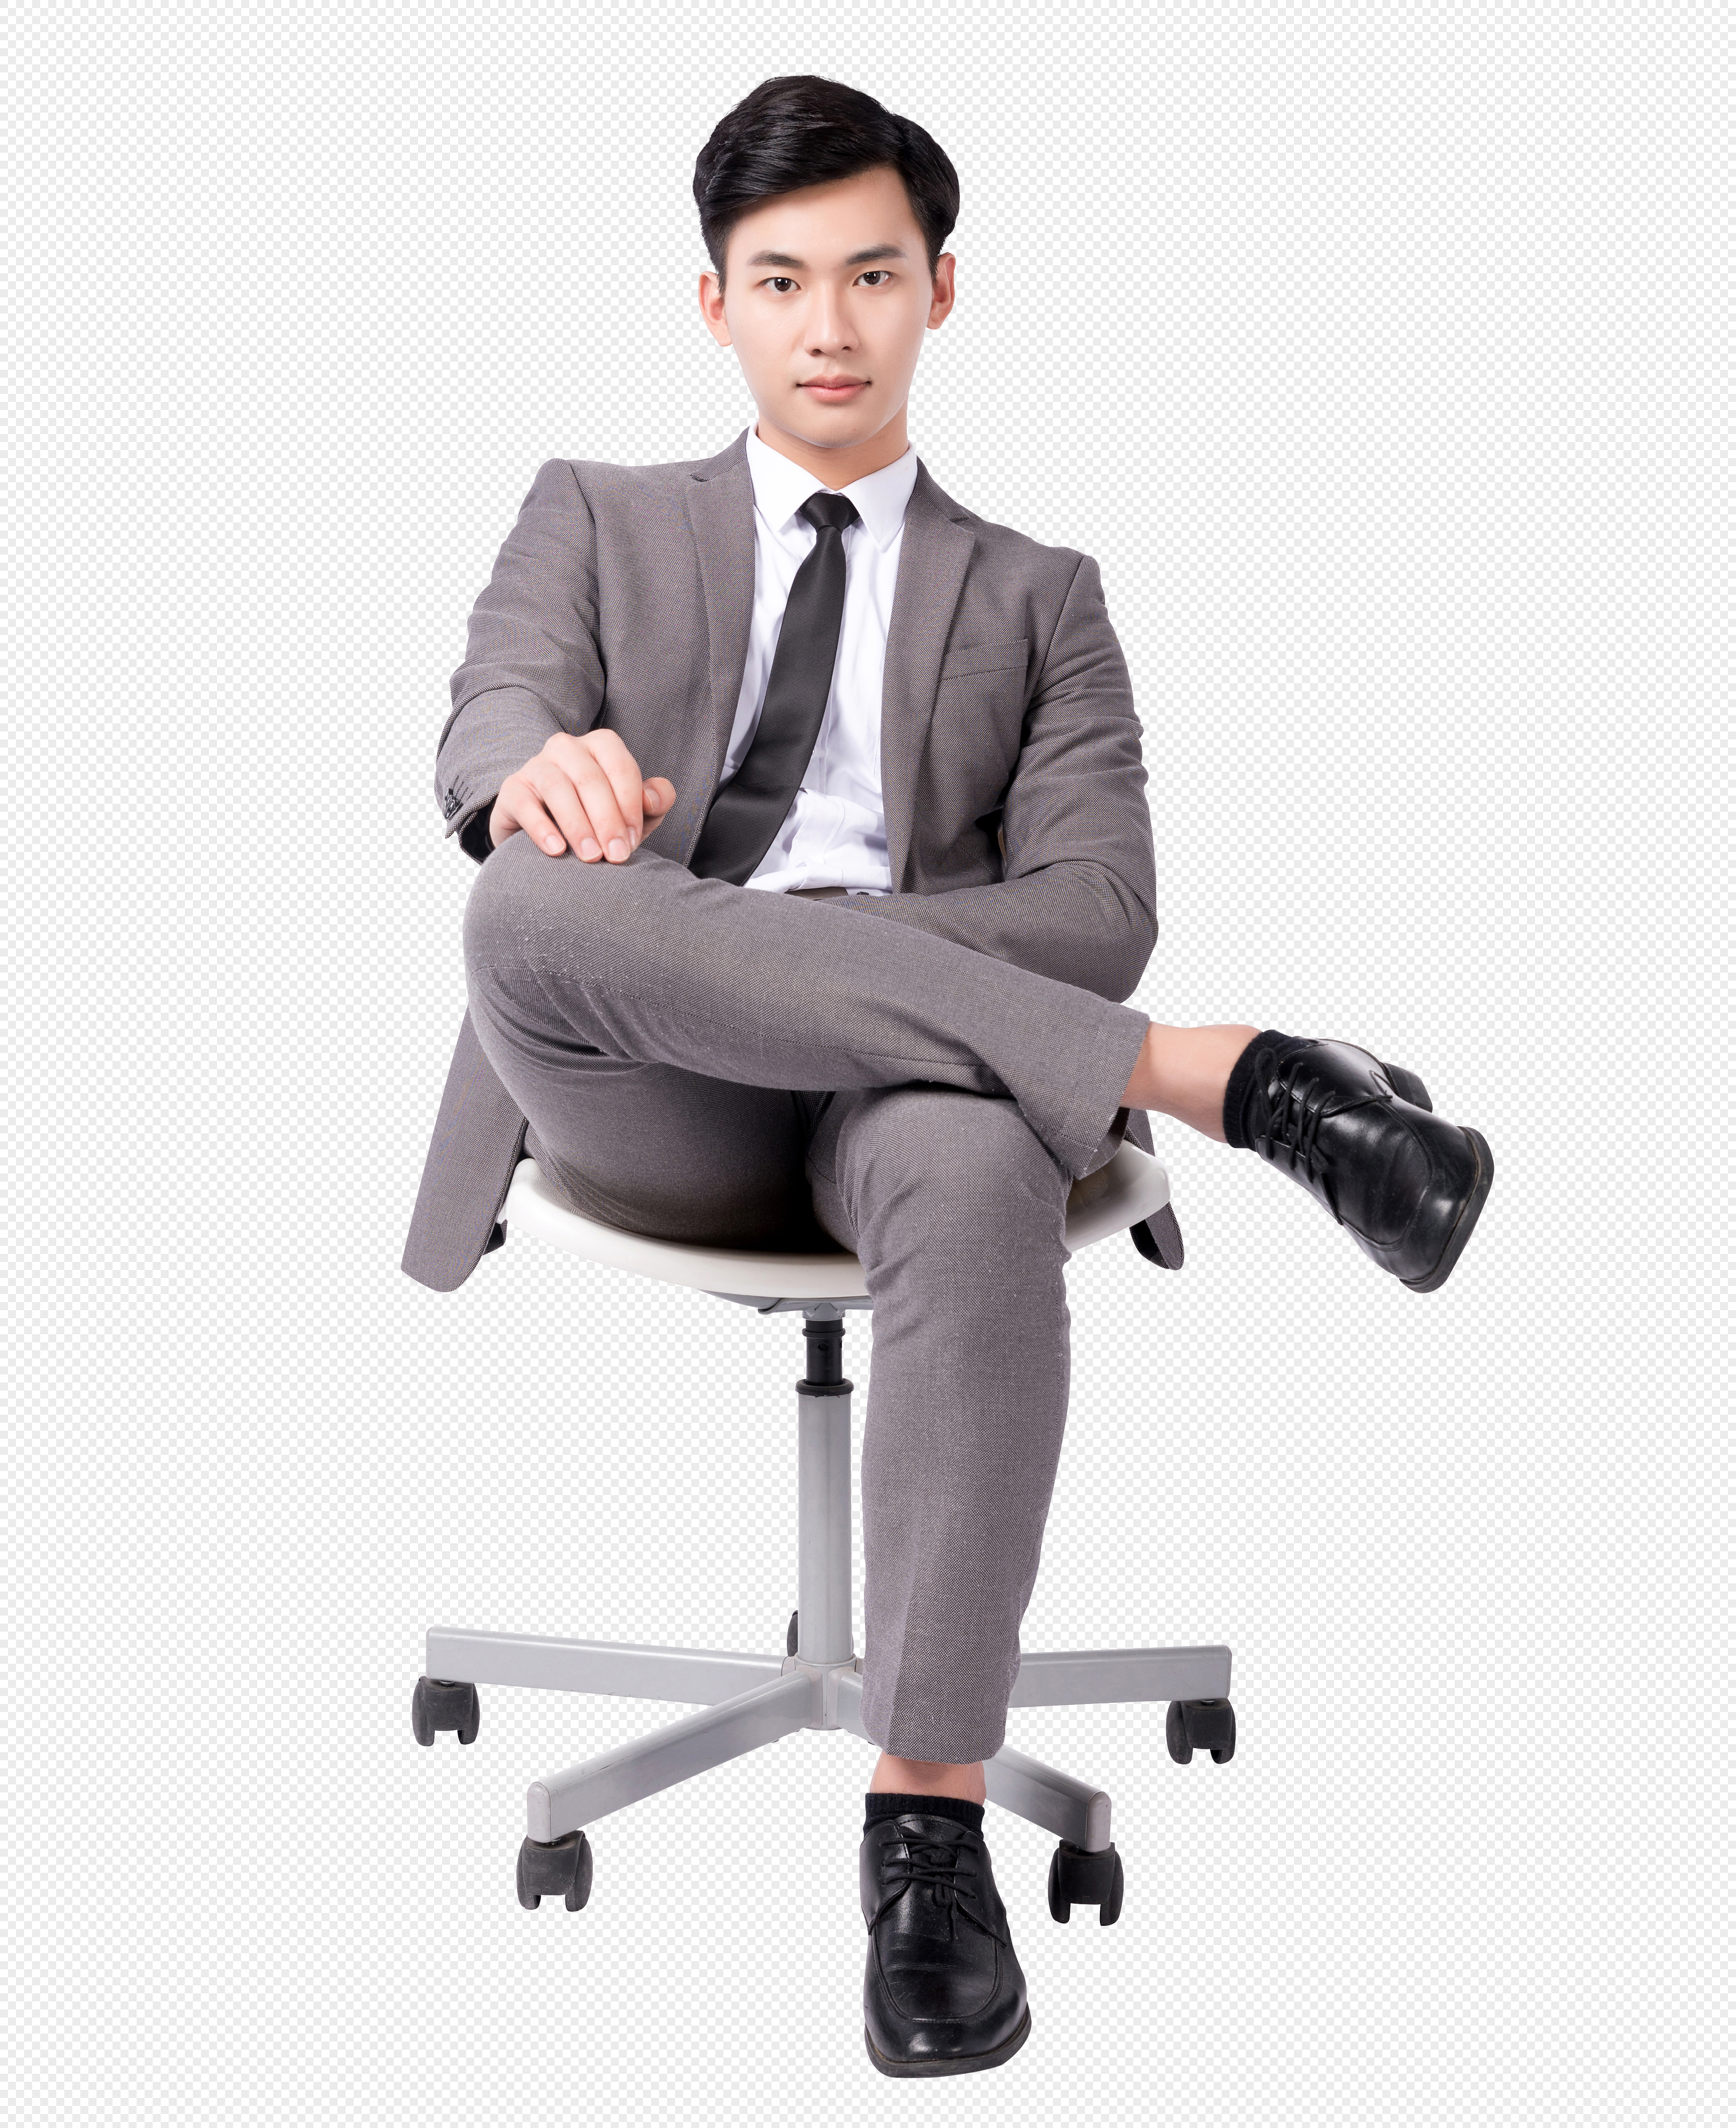 Business People Sitting Png (108+ images in Collection) Page 1.